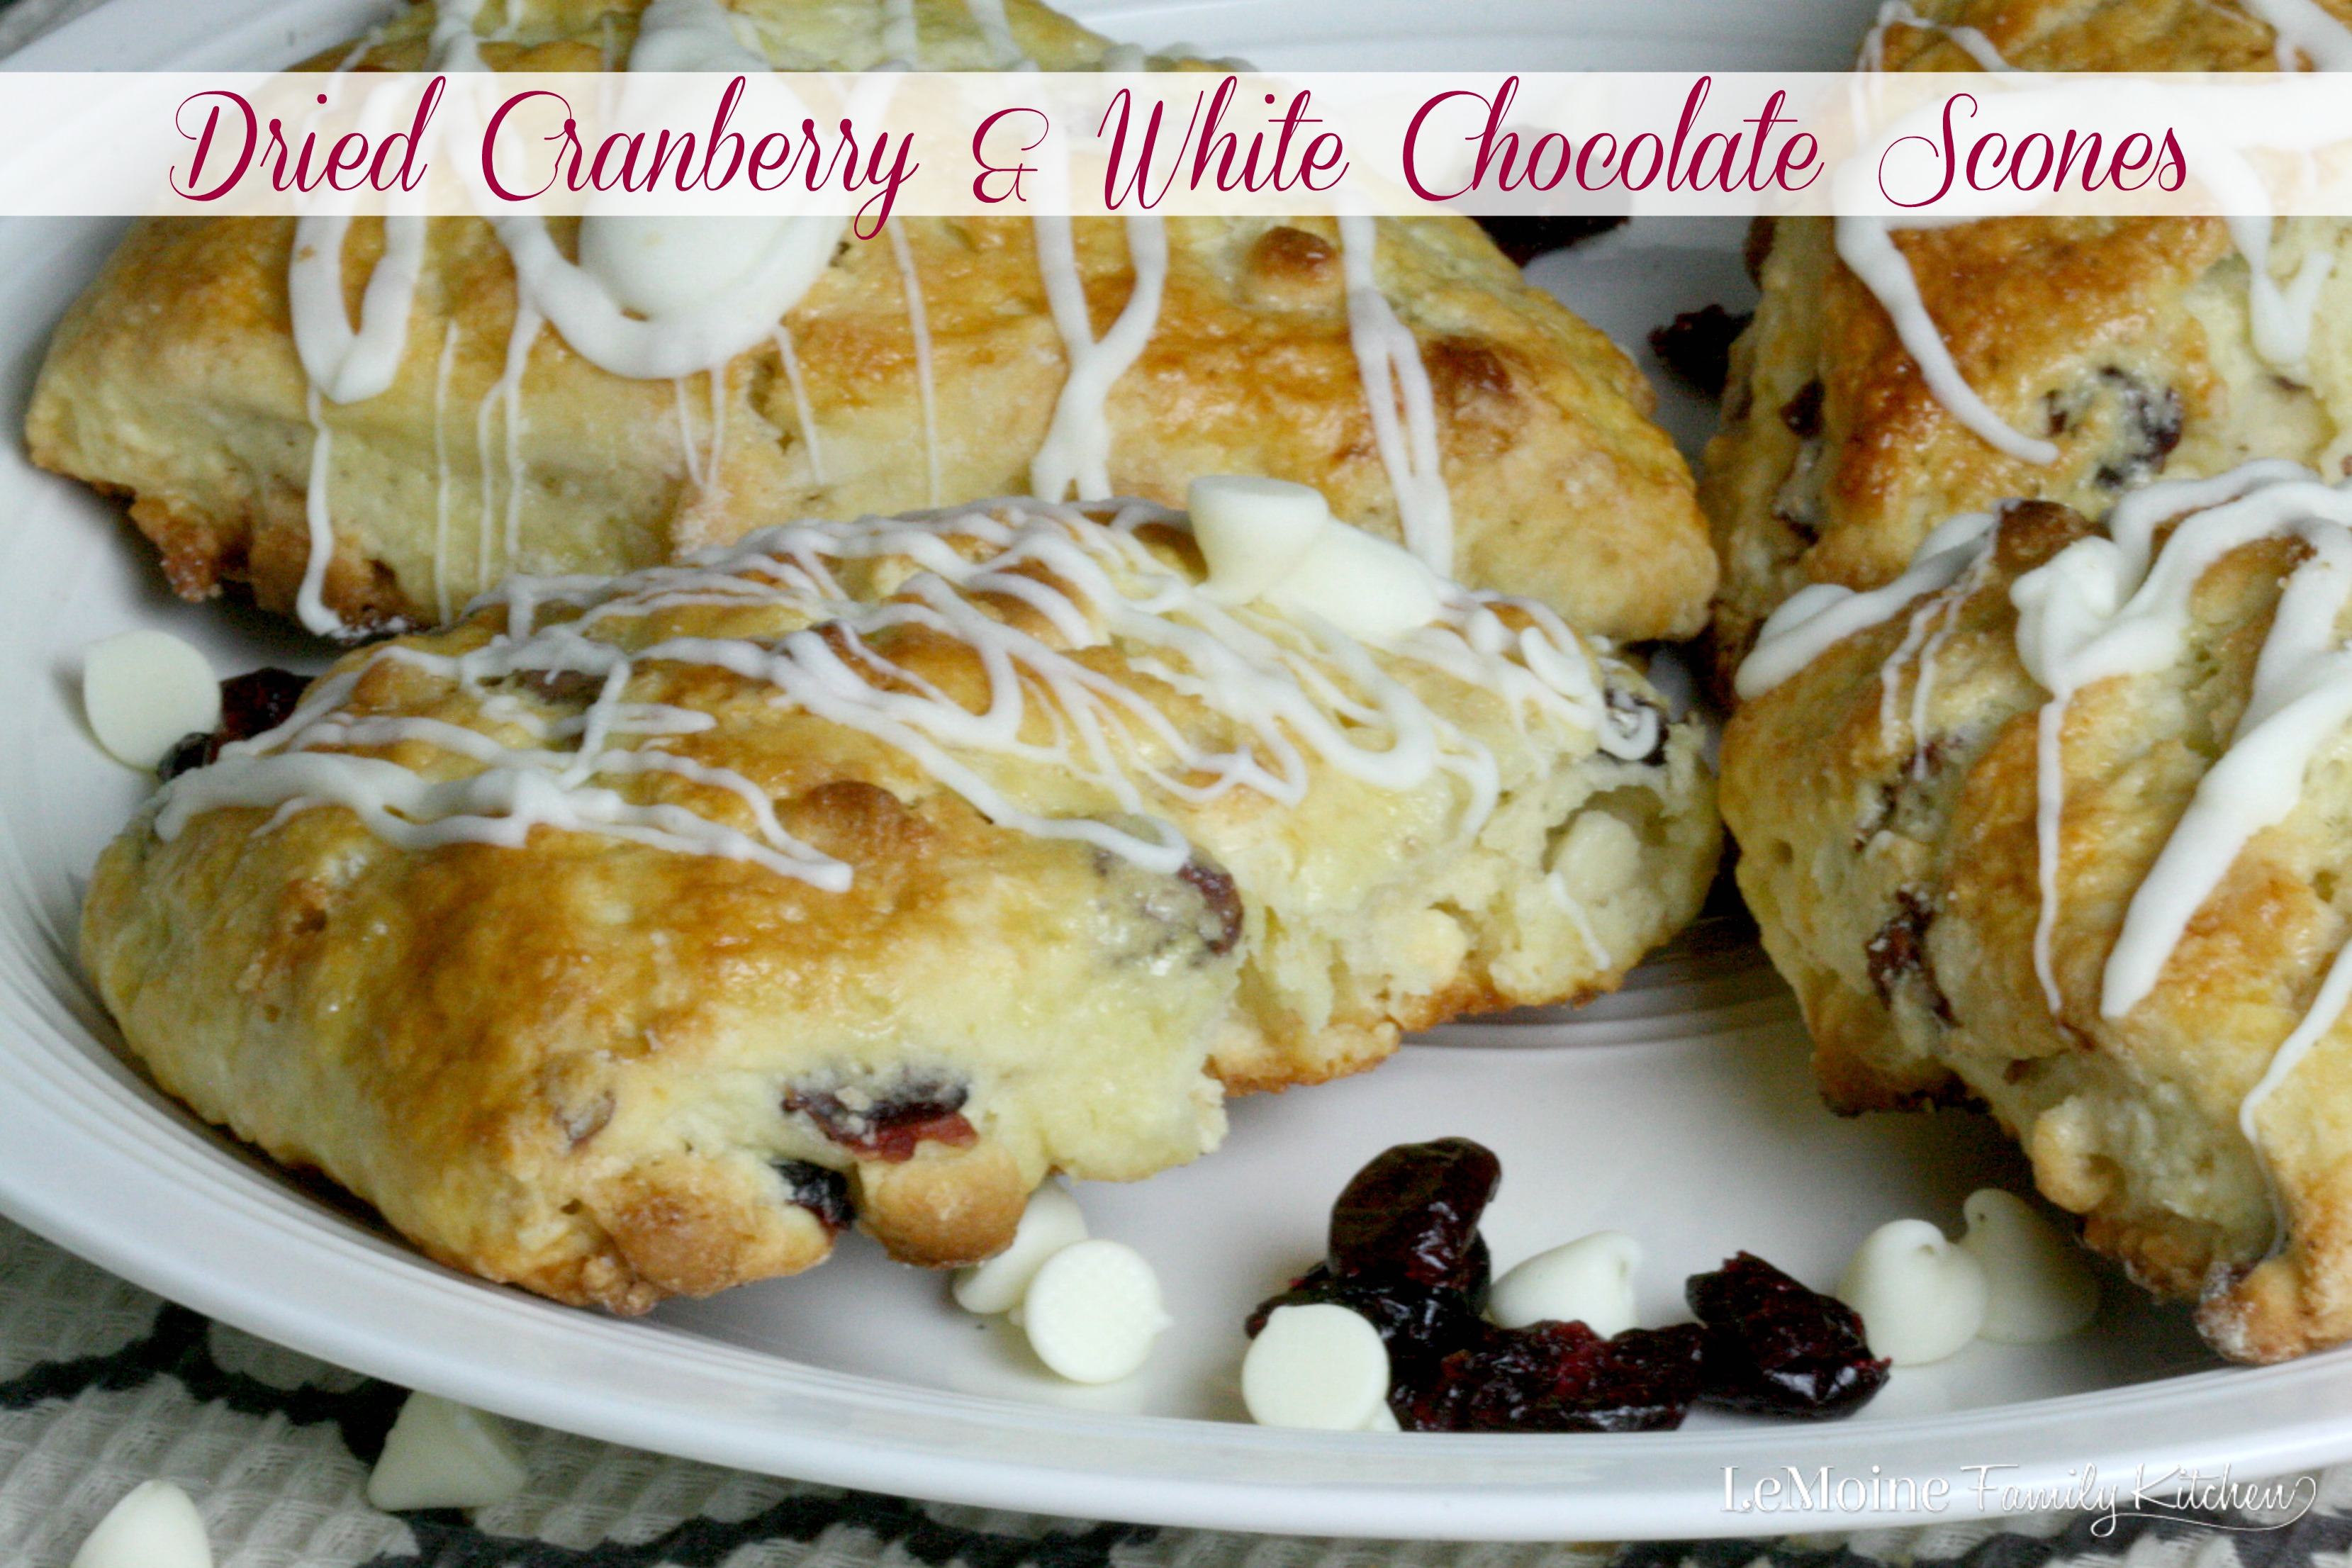 Dried Cranberry & White Chocolate Scones